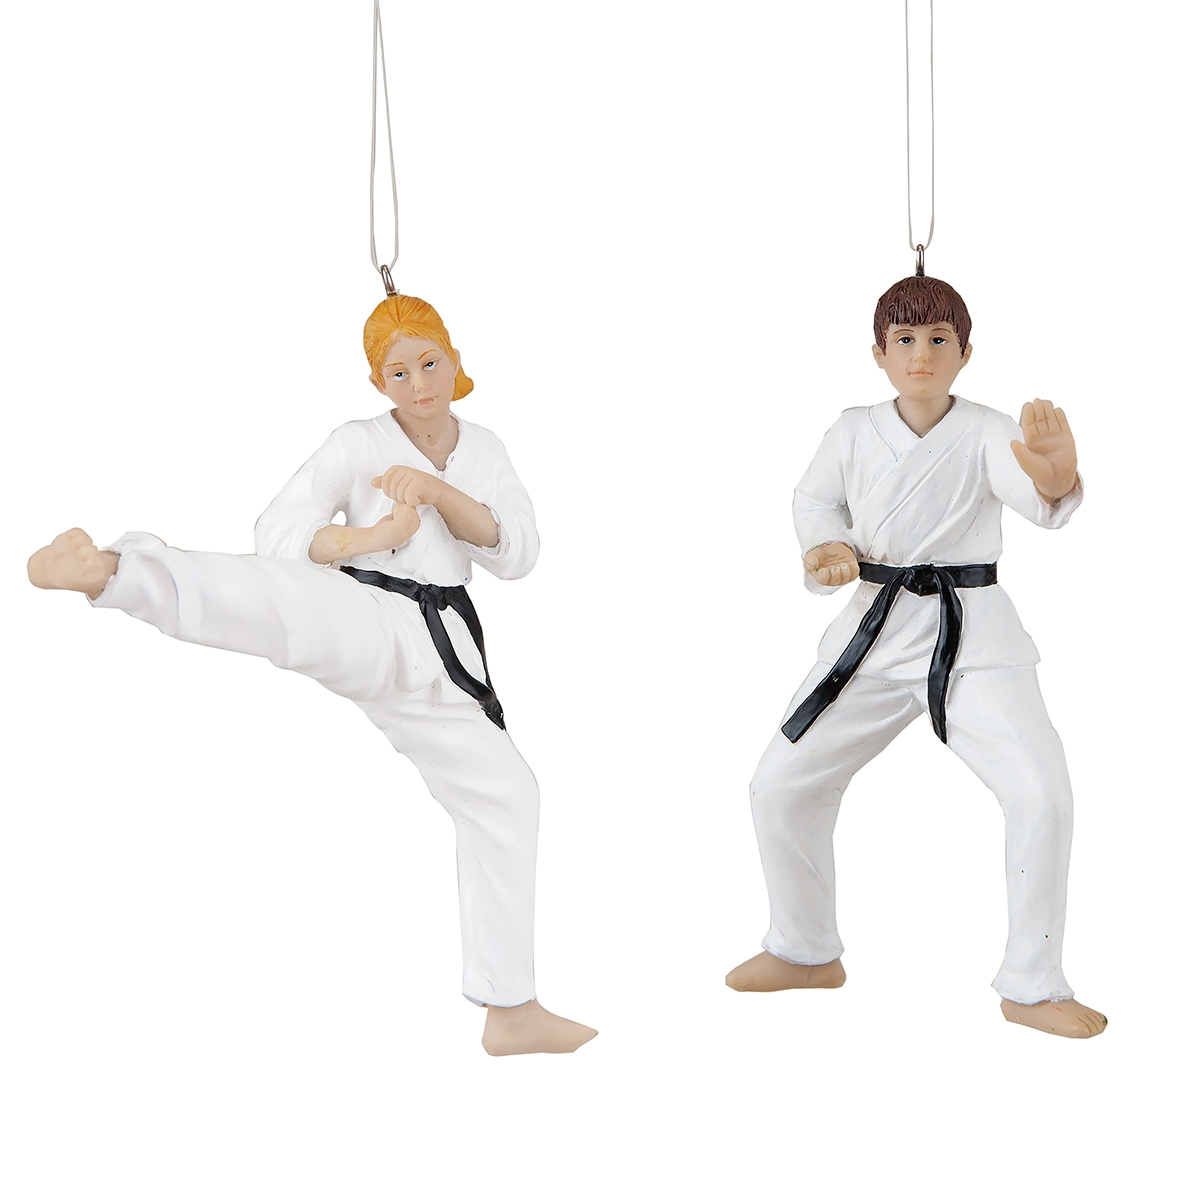 Karate ornament - Karate Ornament A 2